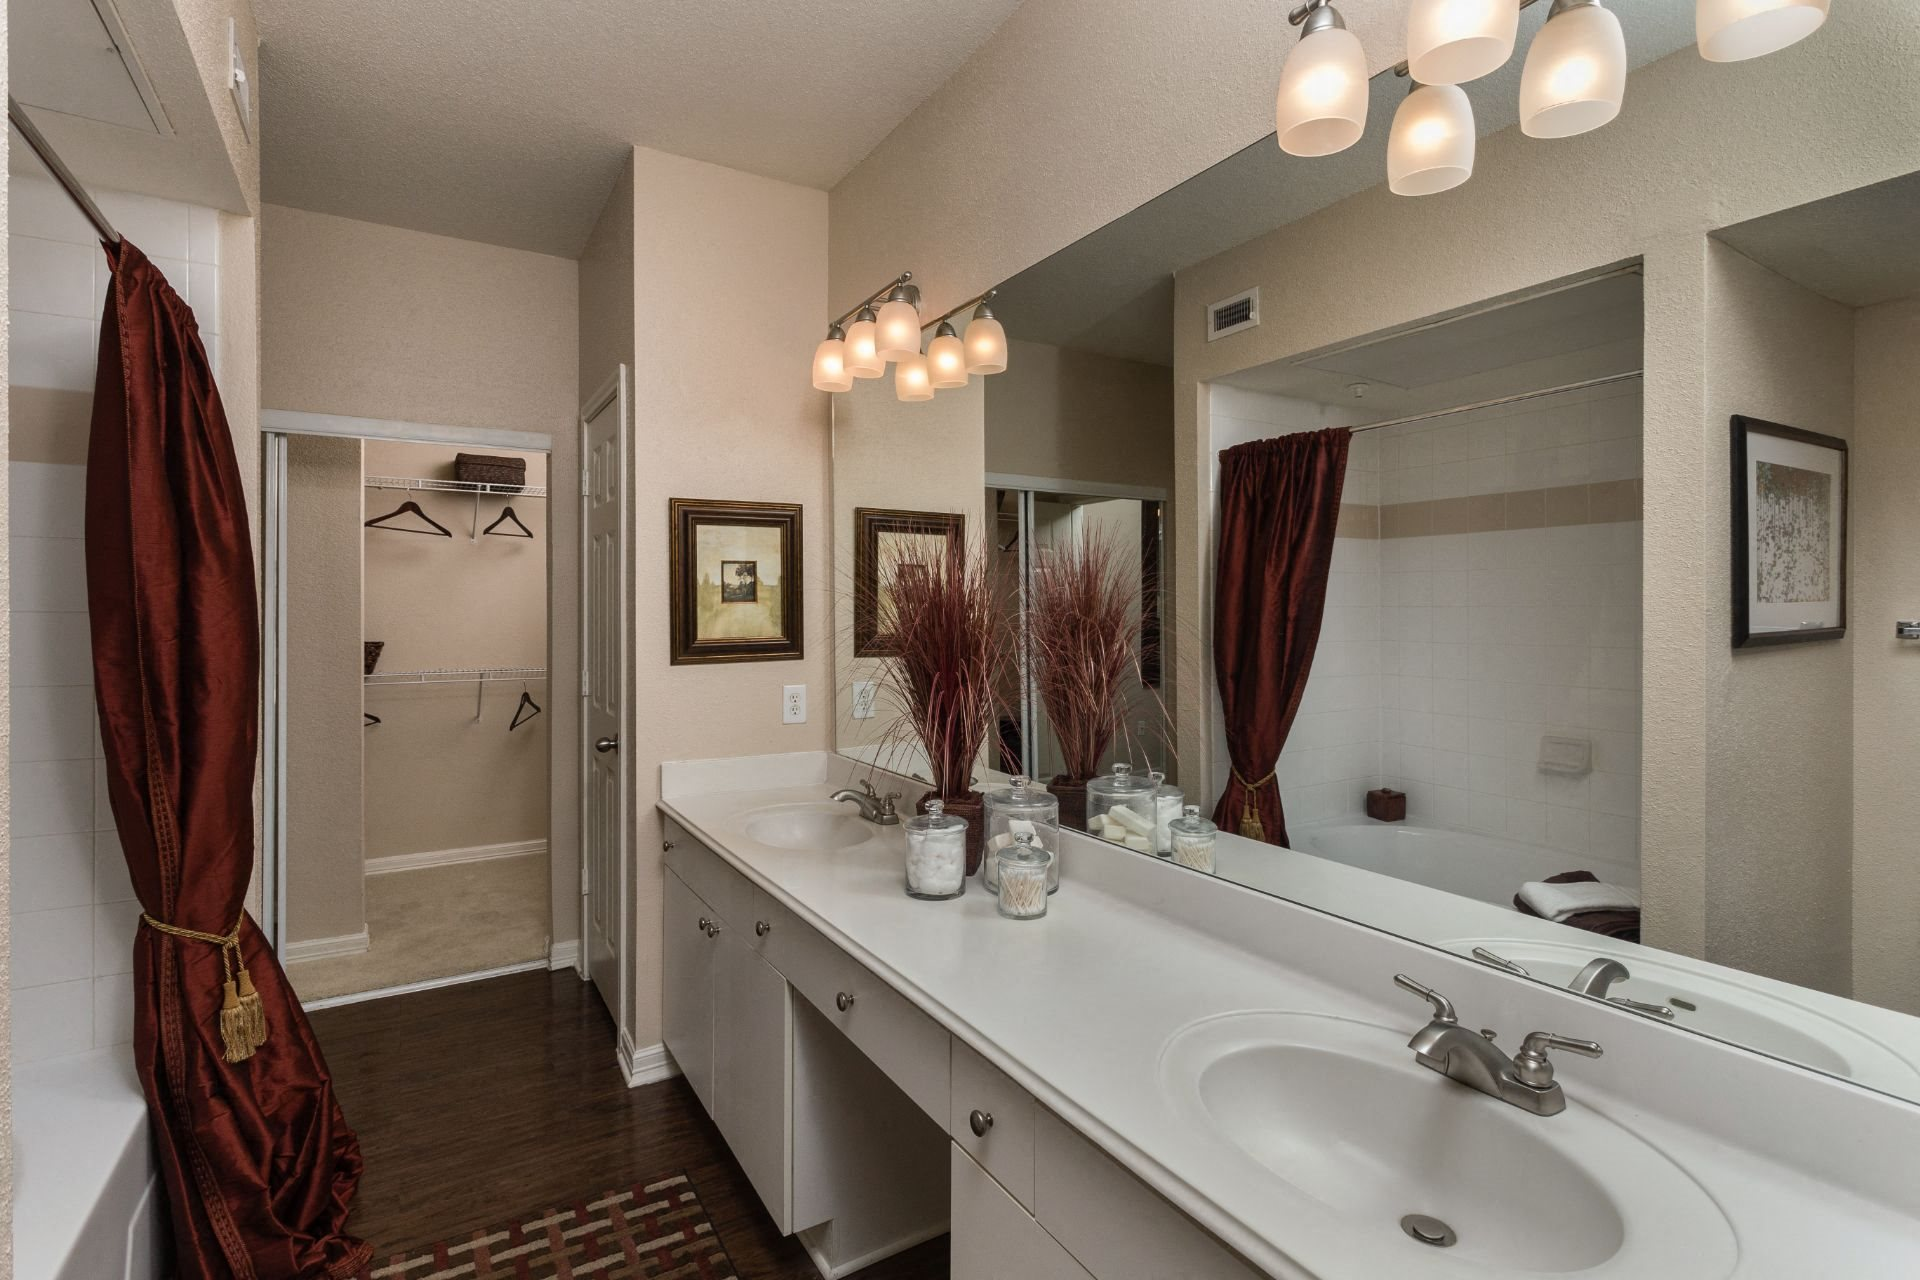 Luxurious Bathrooms at Estates at Bellaire, Texas, 77081